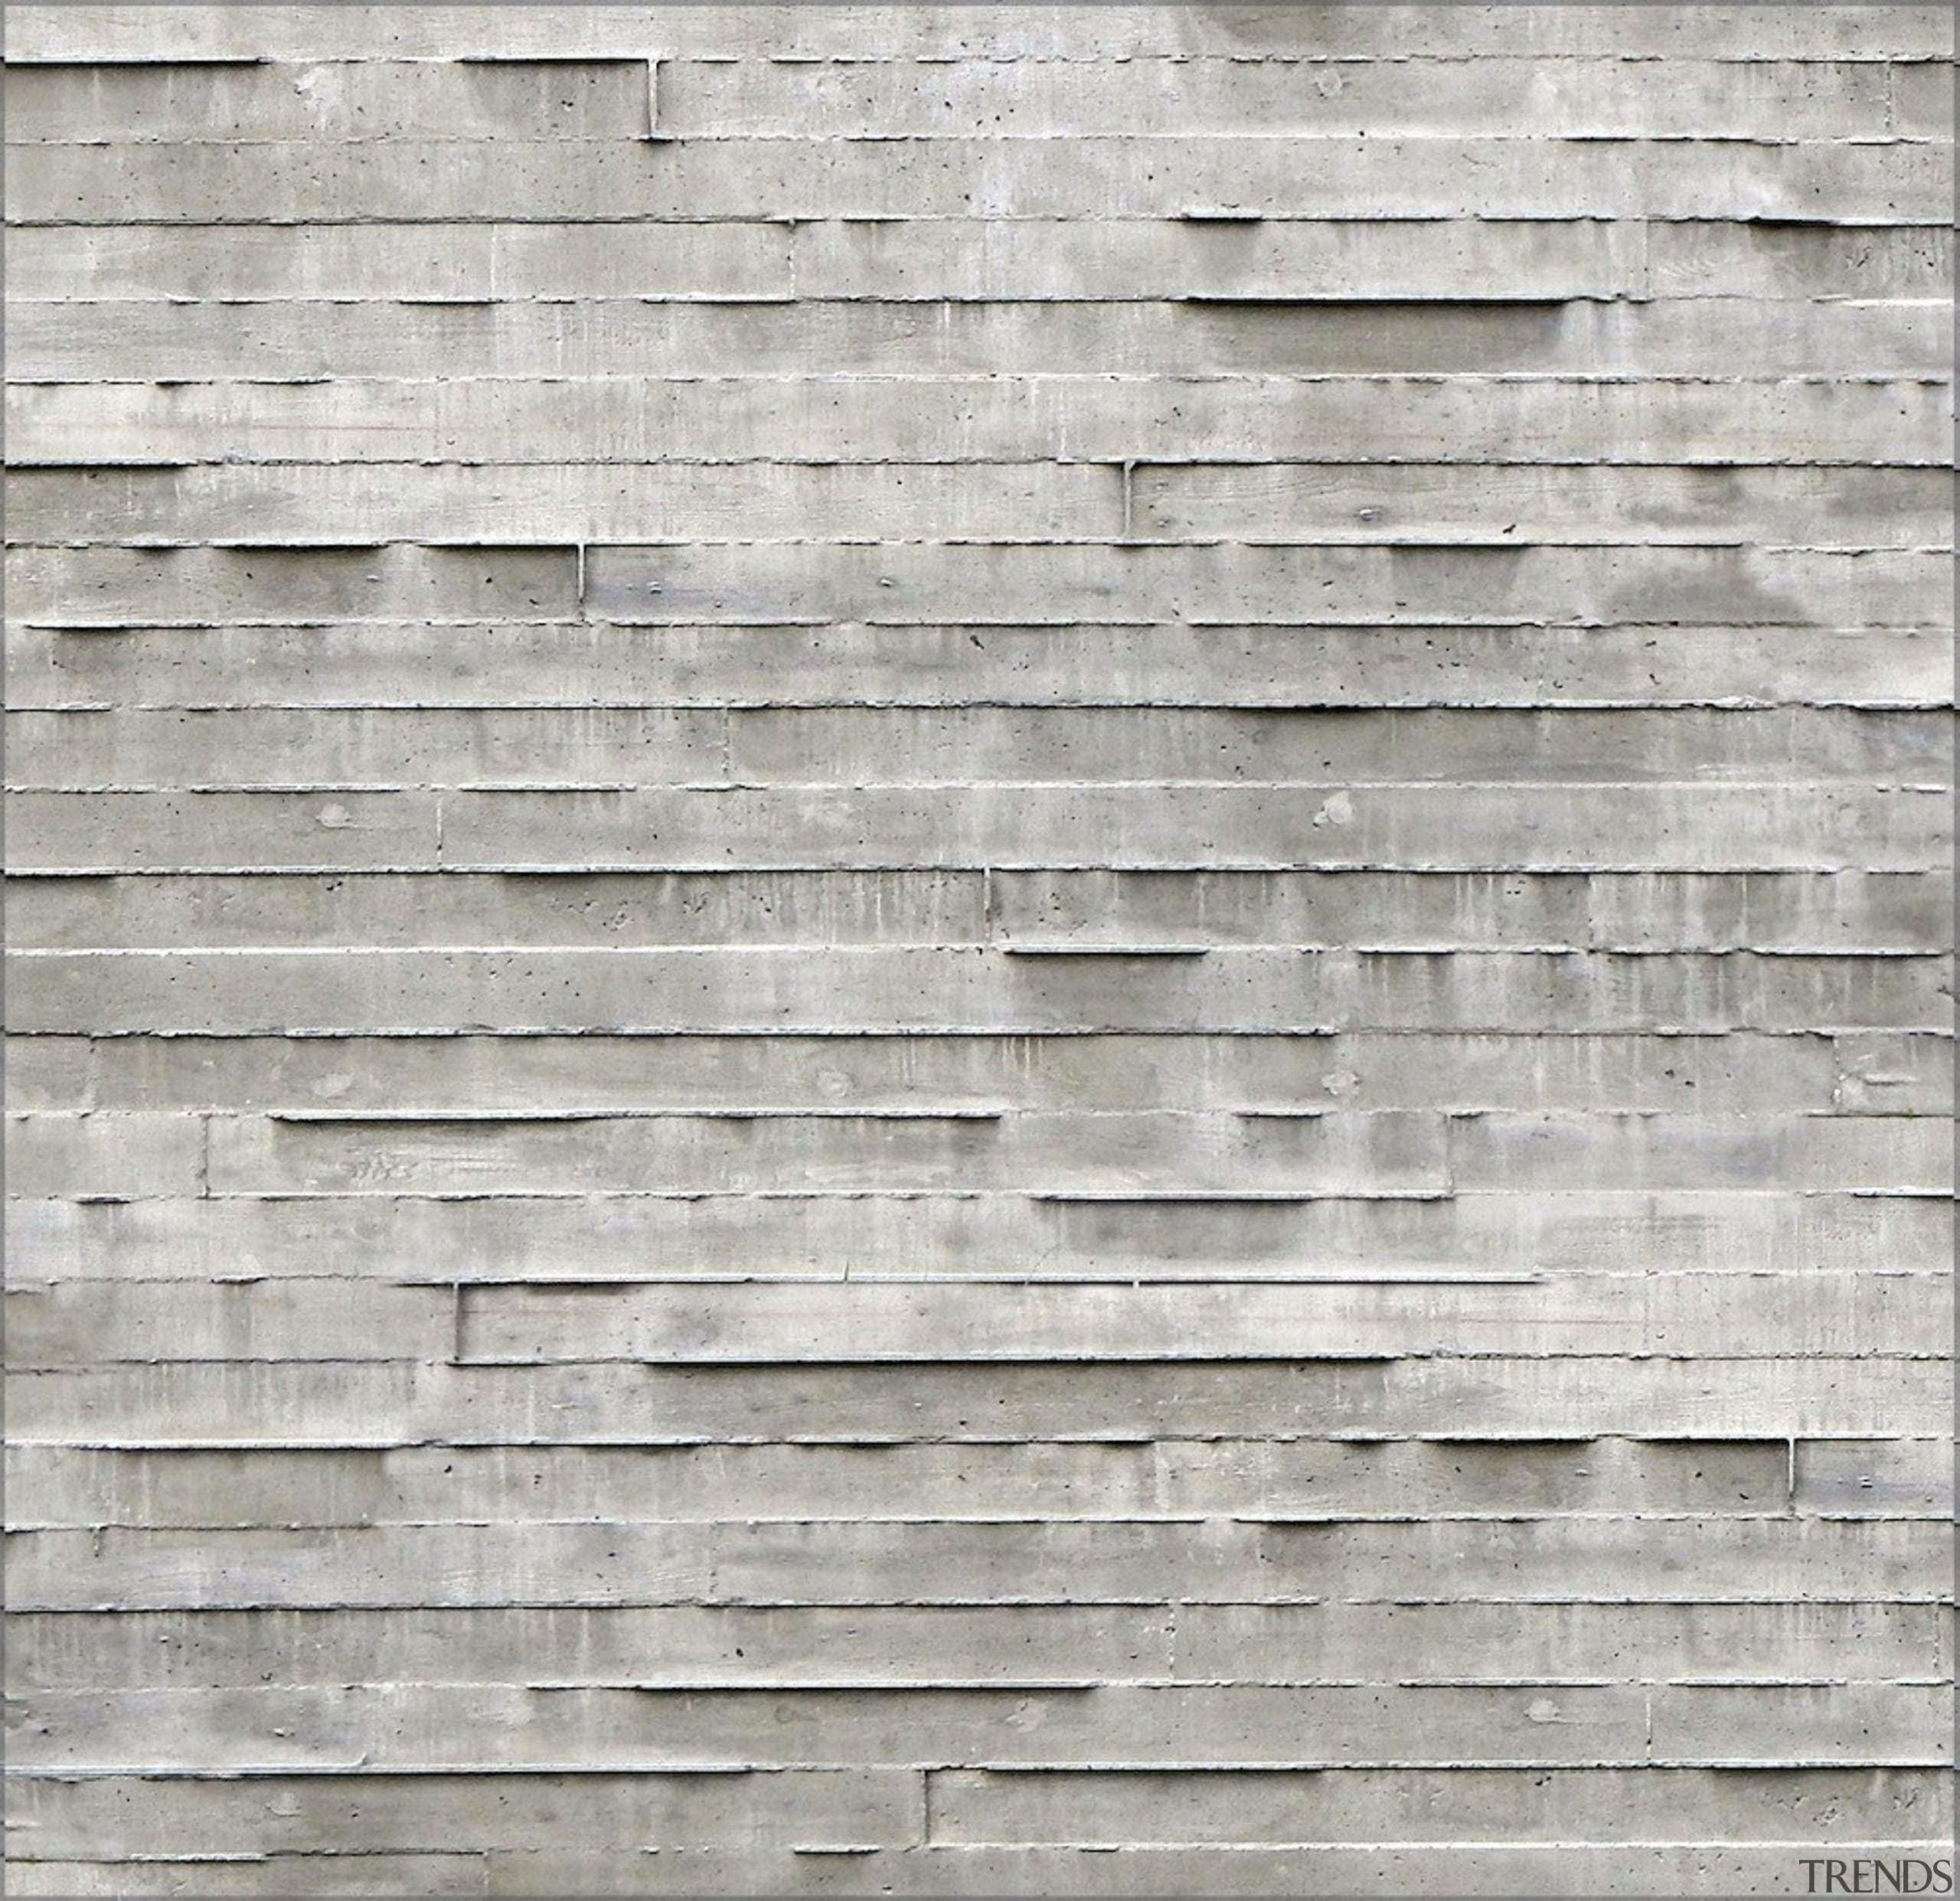 The Layered Concrete Wall Certainly Gallery 5 Trends